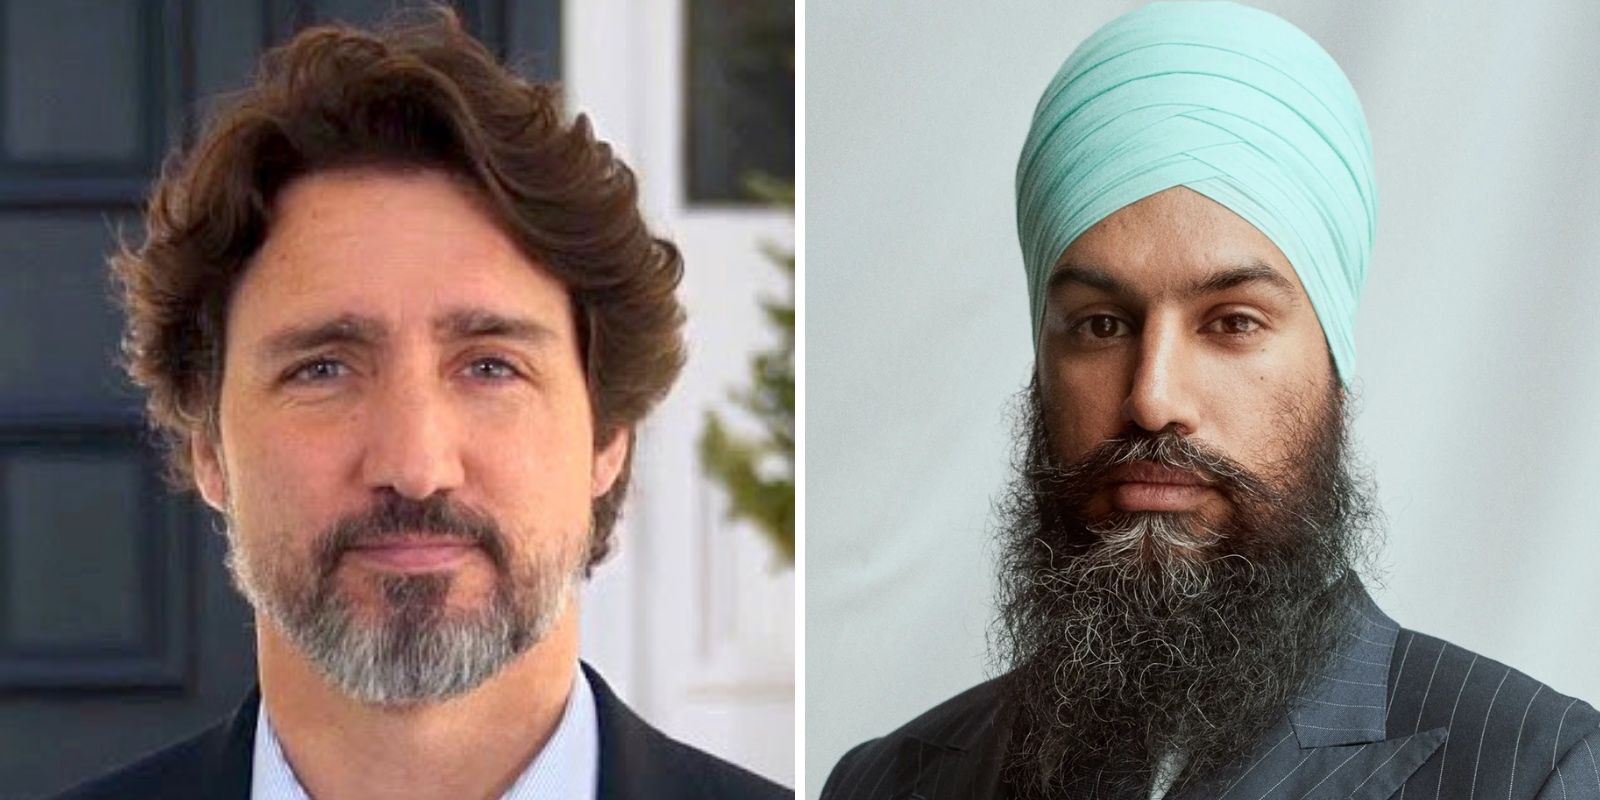 BREAKING: Election avoided as NDP-Libs reach COVID-19 aid deal